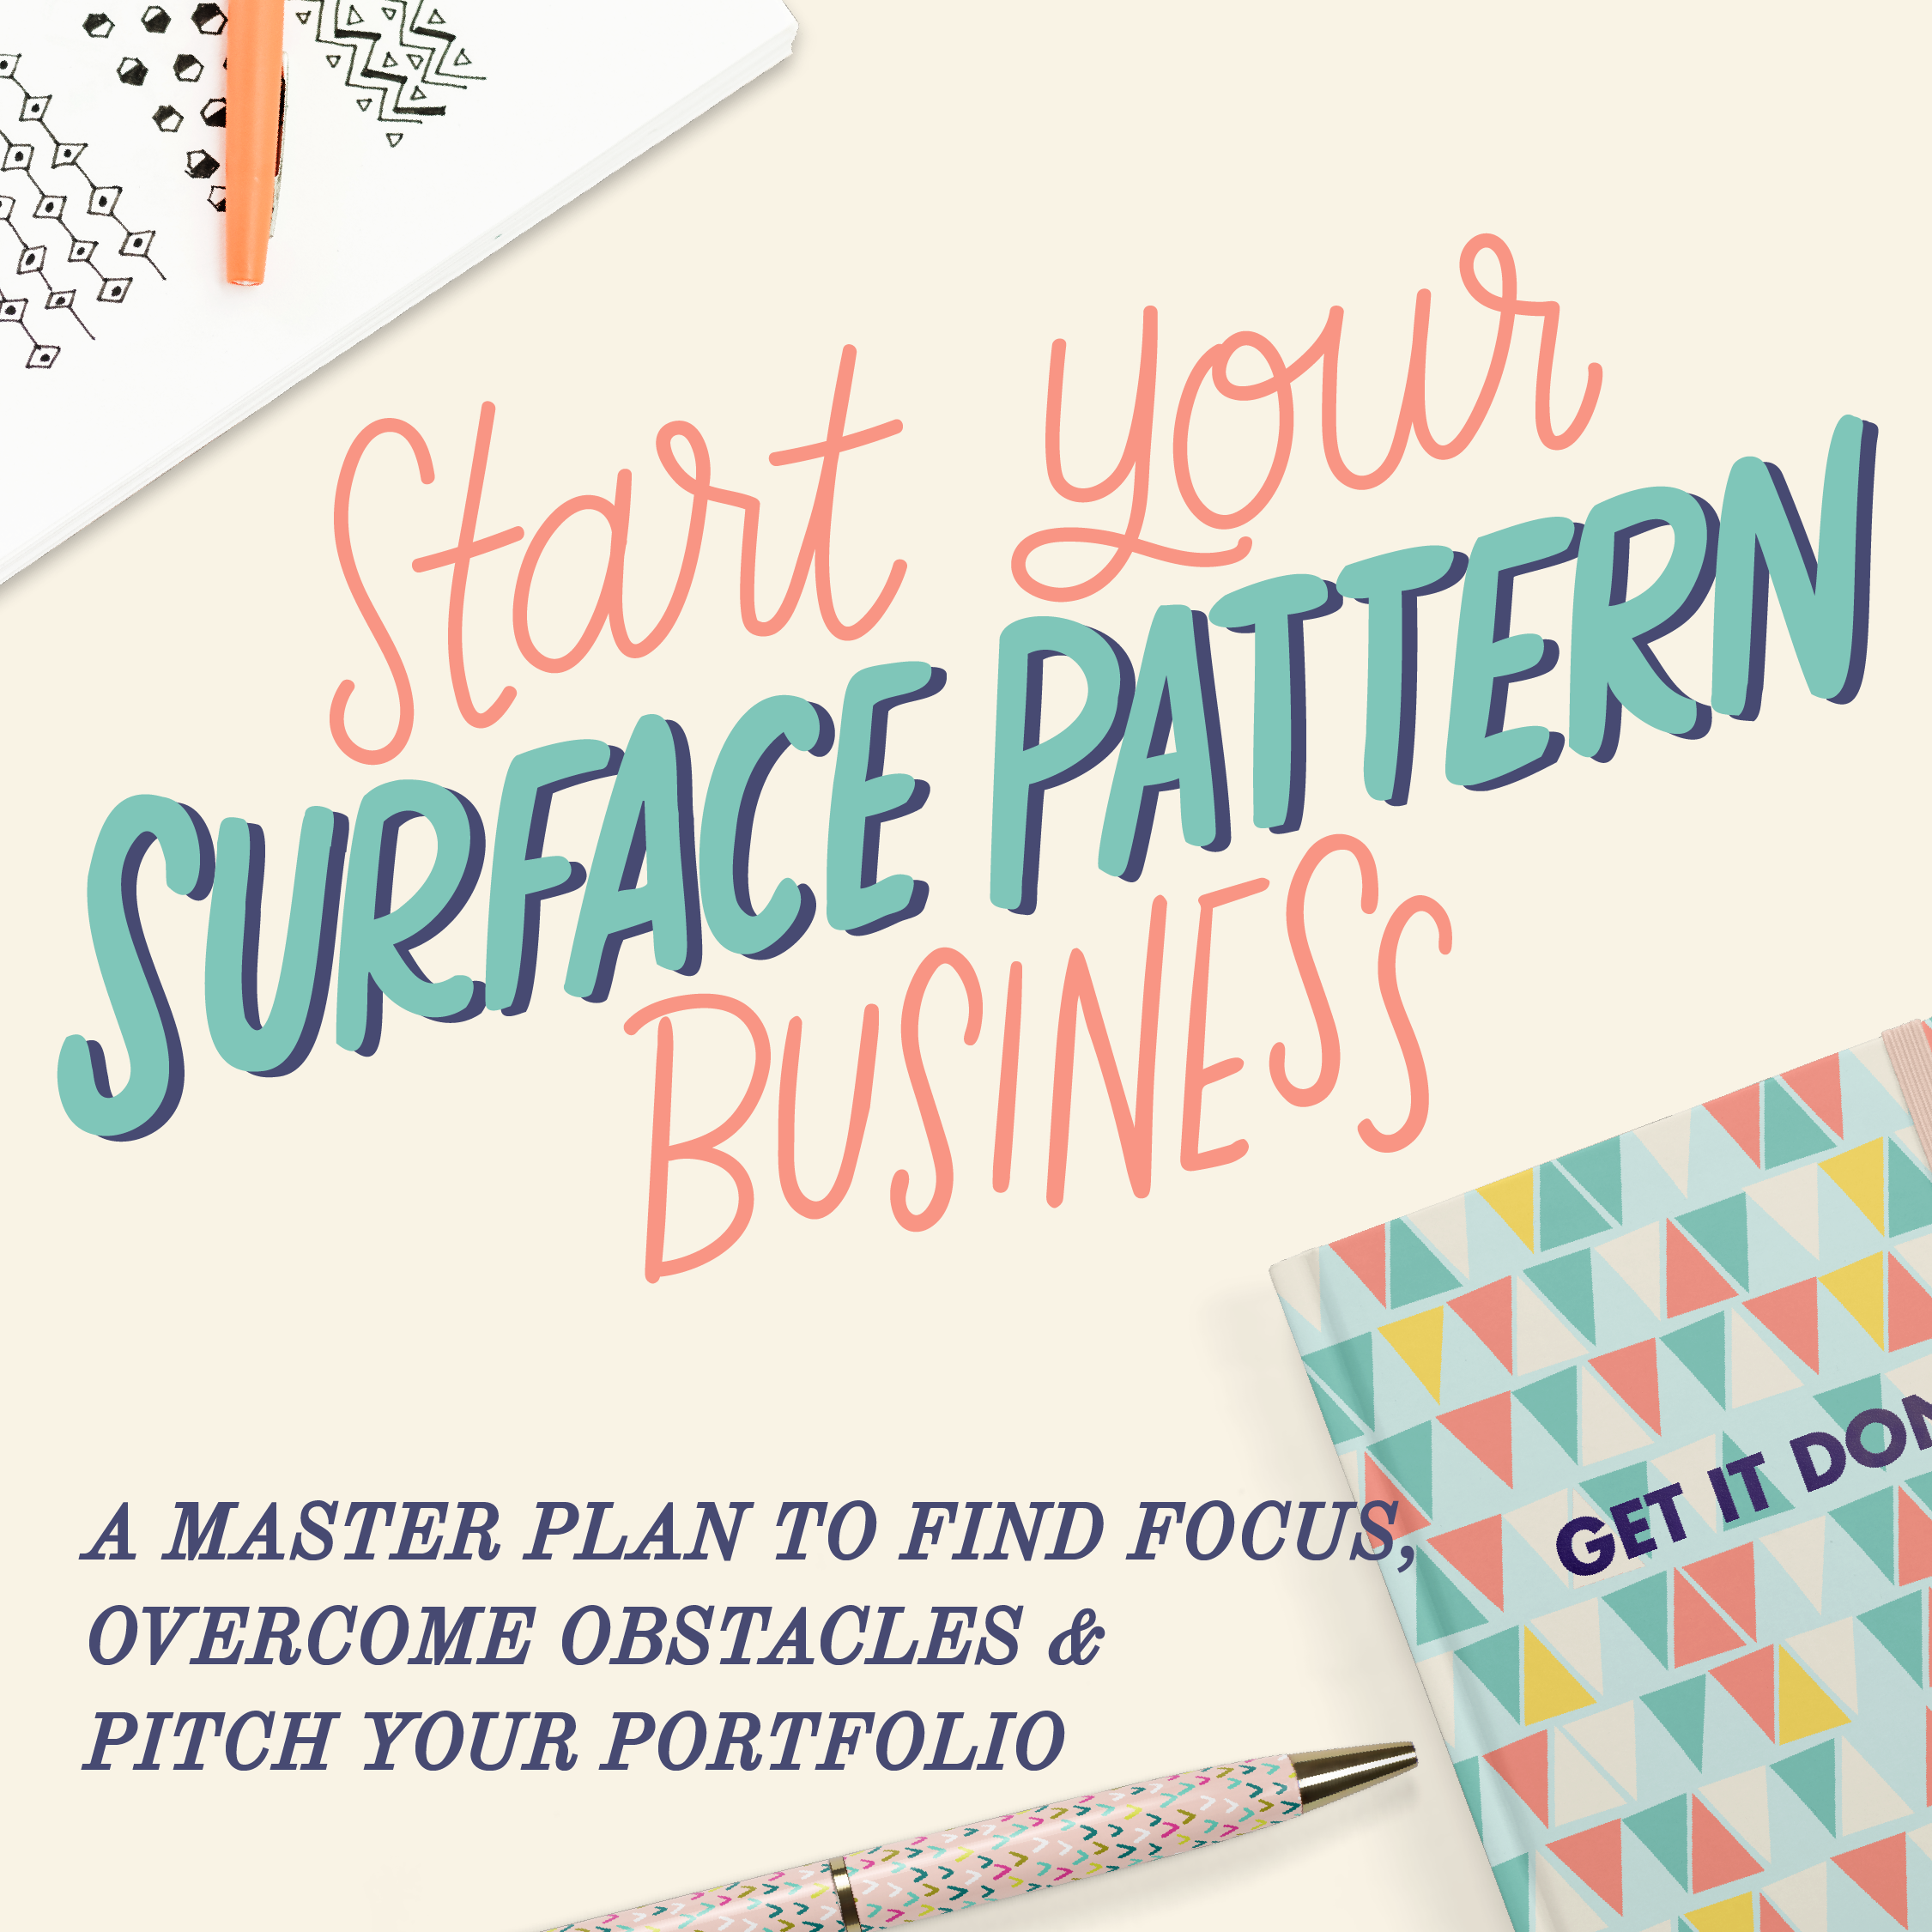 Start Your Surface Pattern Business